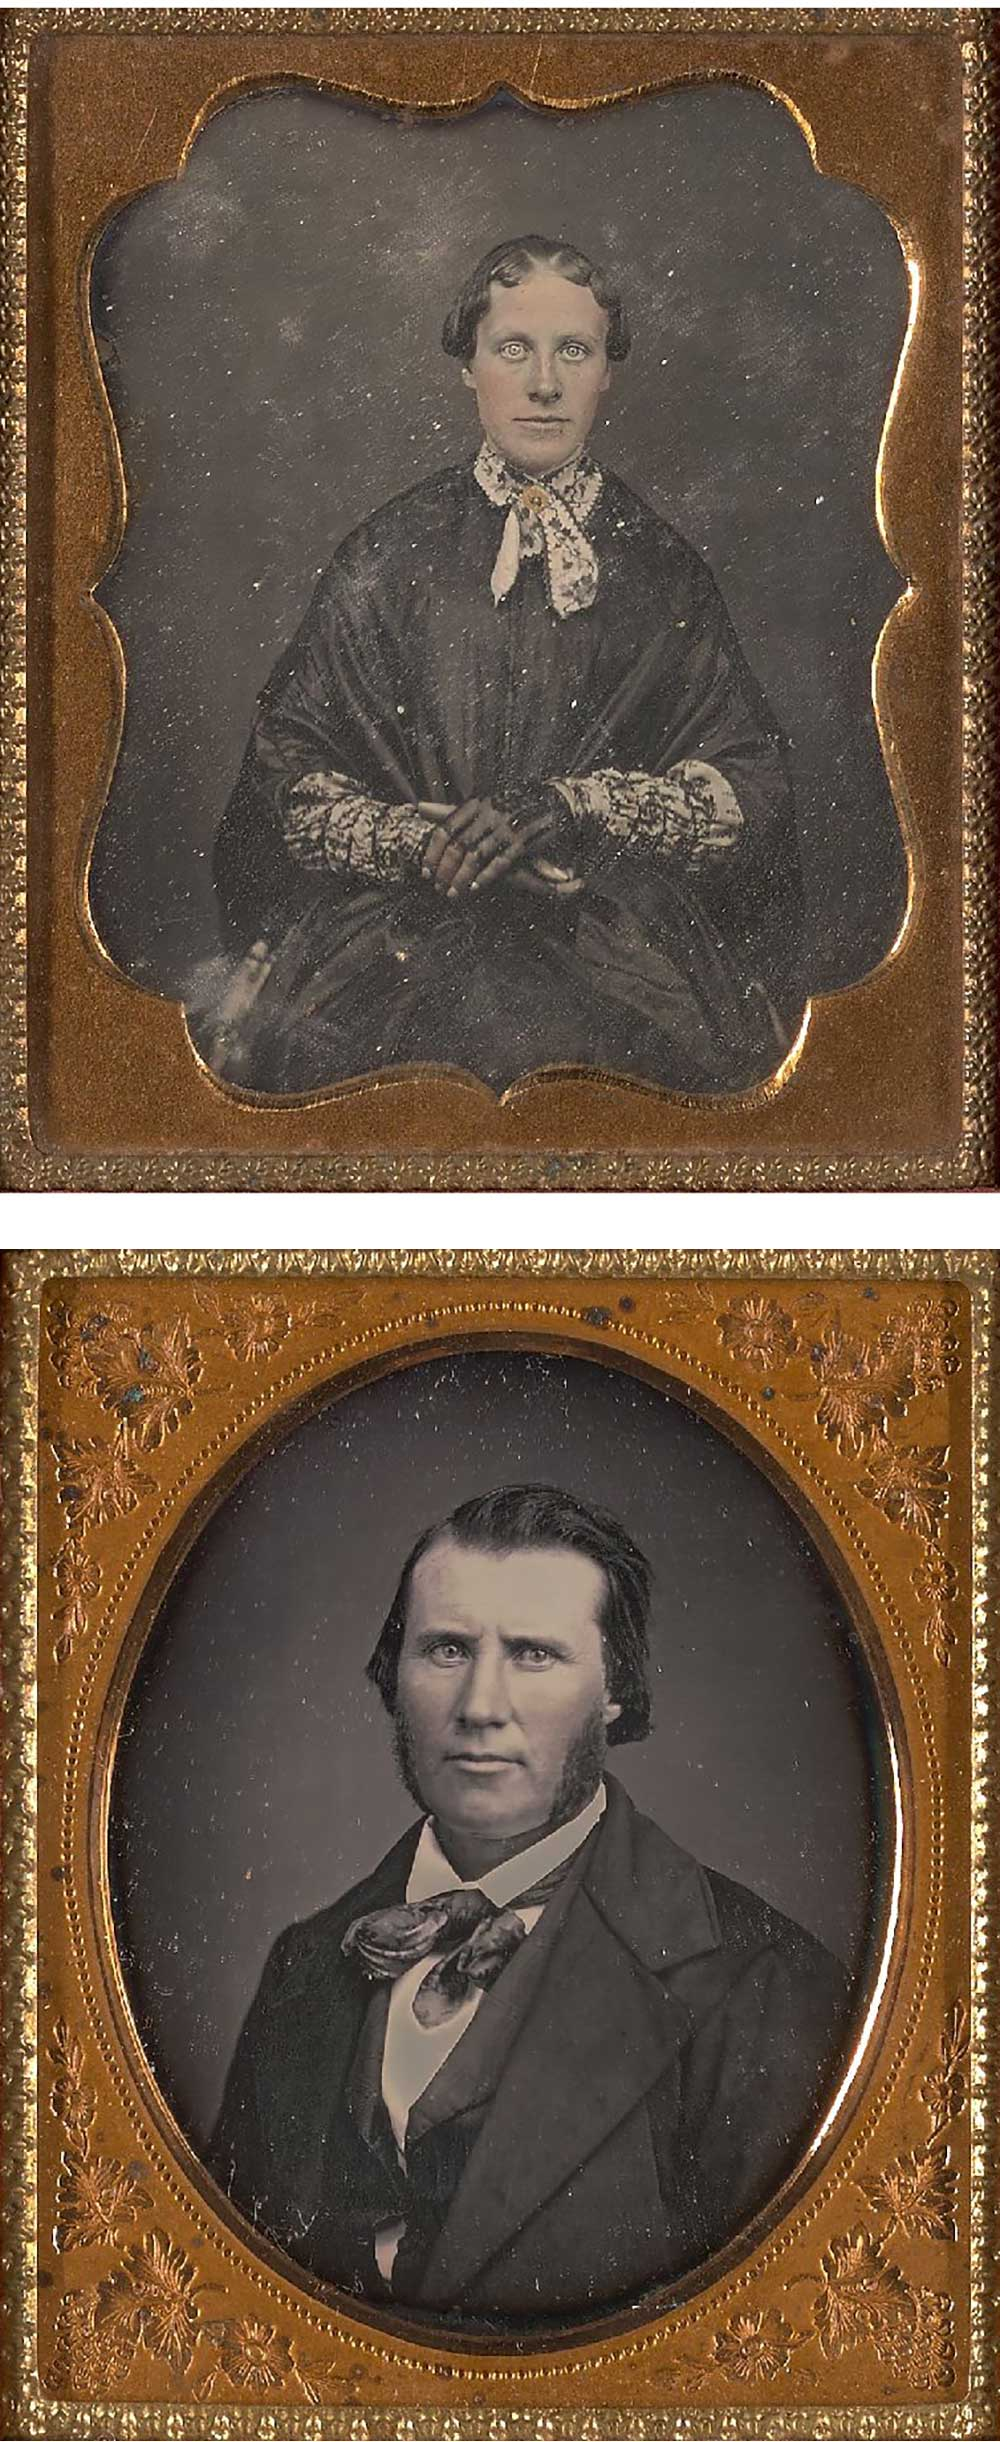 Top: Daguerreotype of a woman, c. 1854. Photograph by Candace McCormick Reed. Bottom: Daguerreotype of a man, c. 1855. Photograph by Mrs. Short.